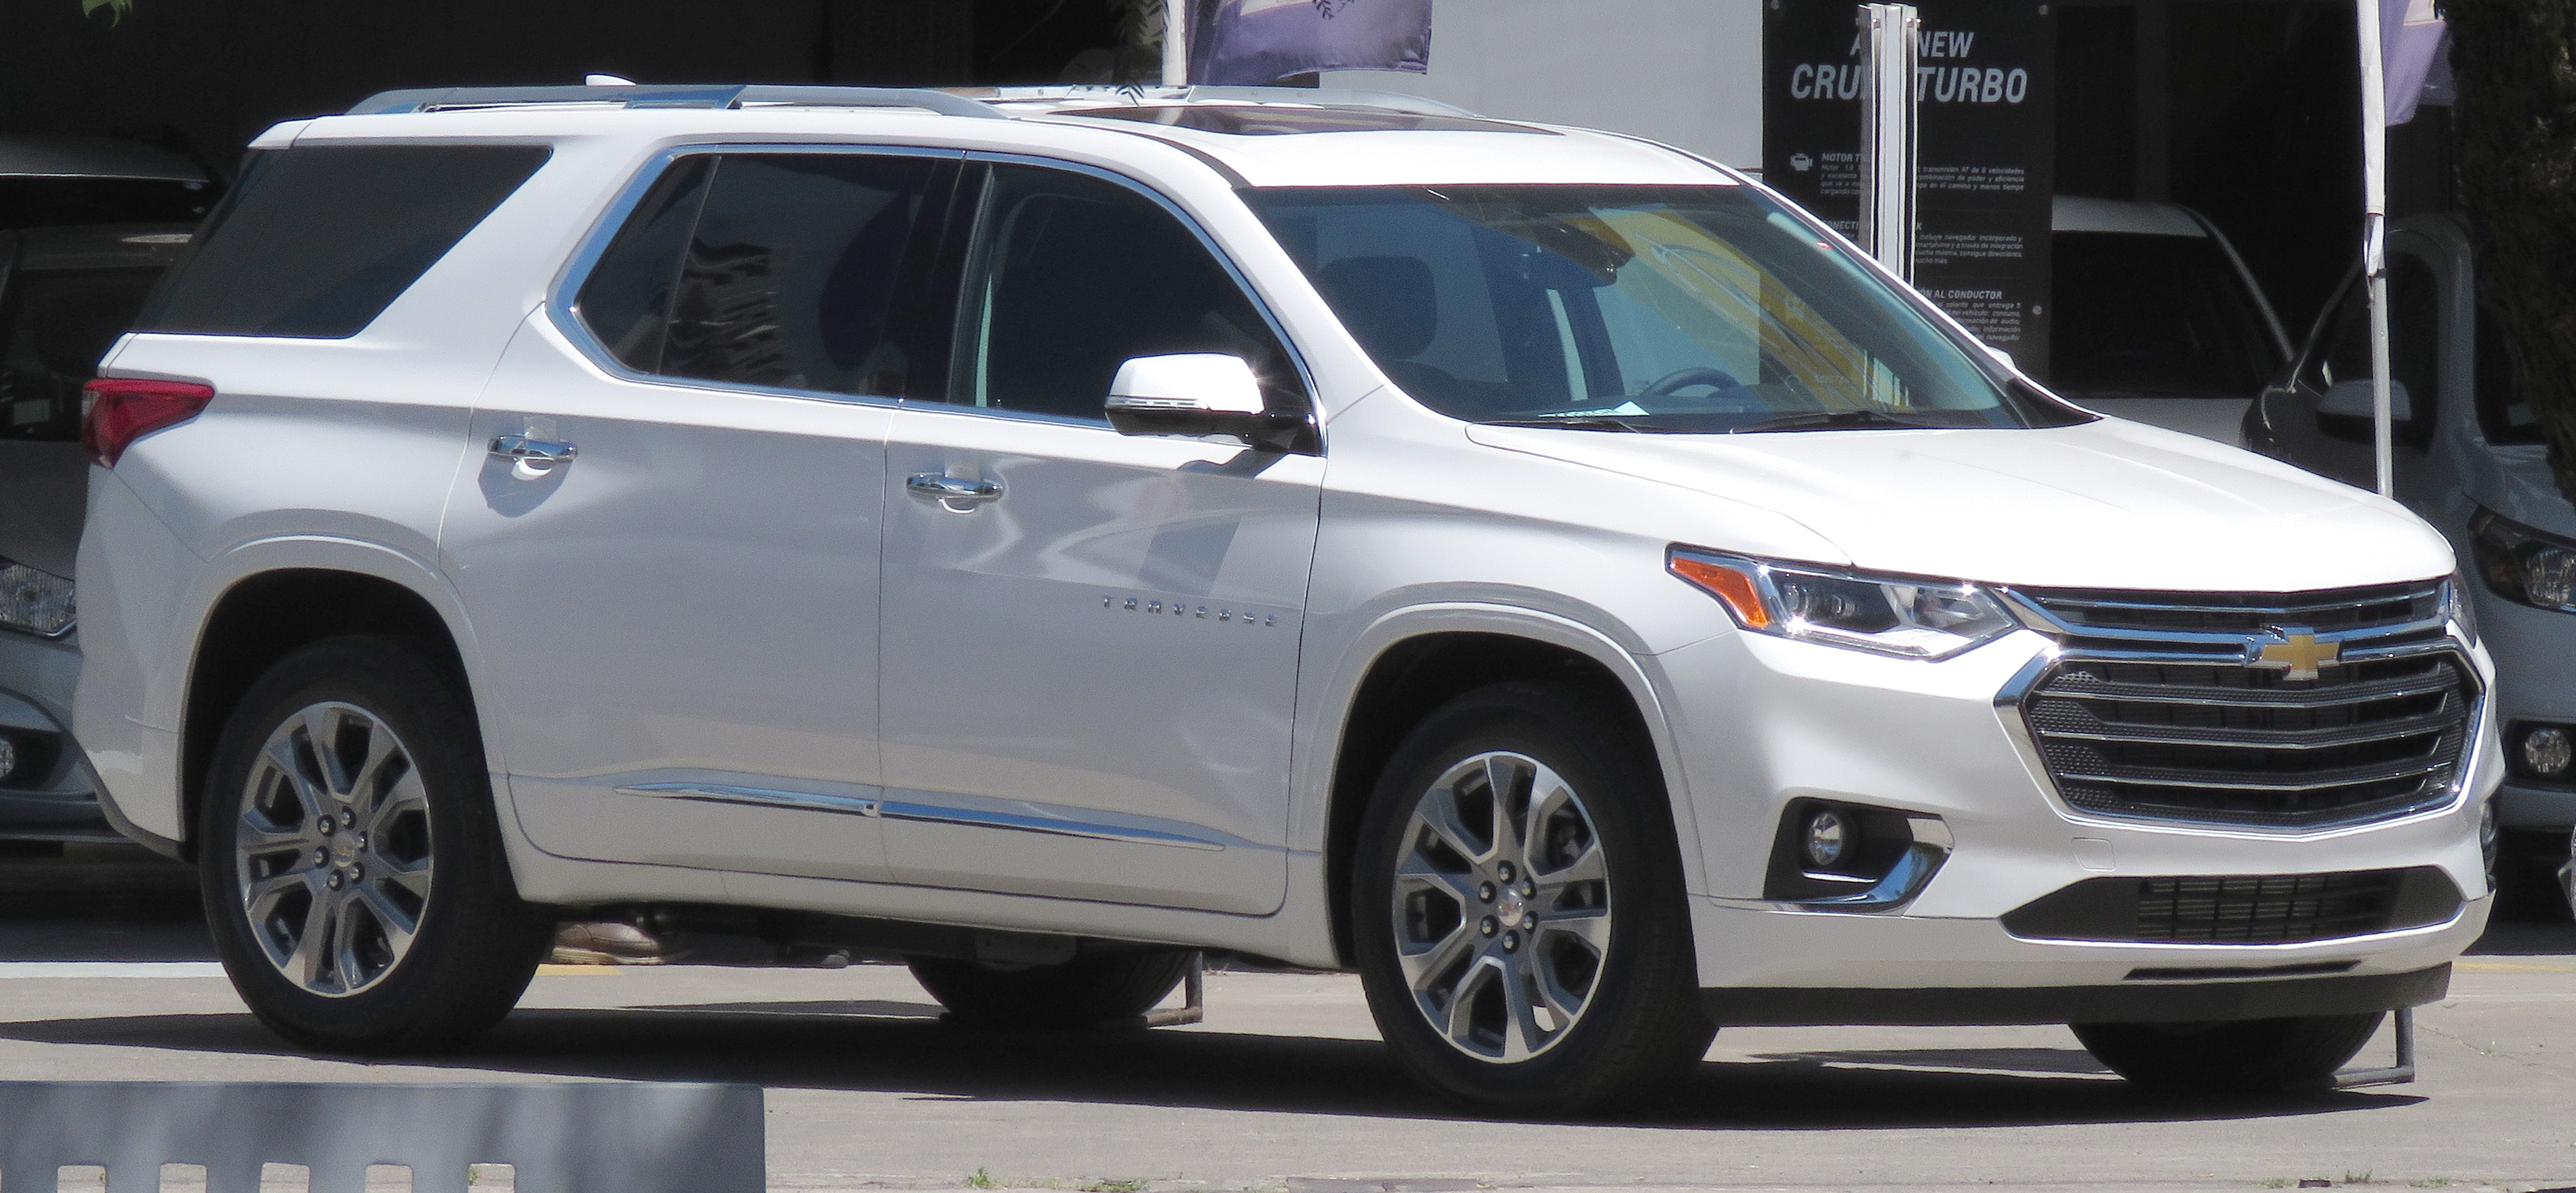 Chevrolet traverse wikiwand sciox Choice Image